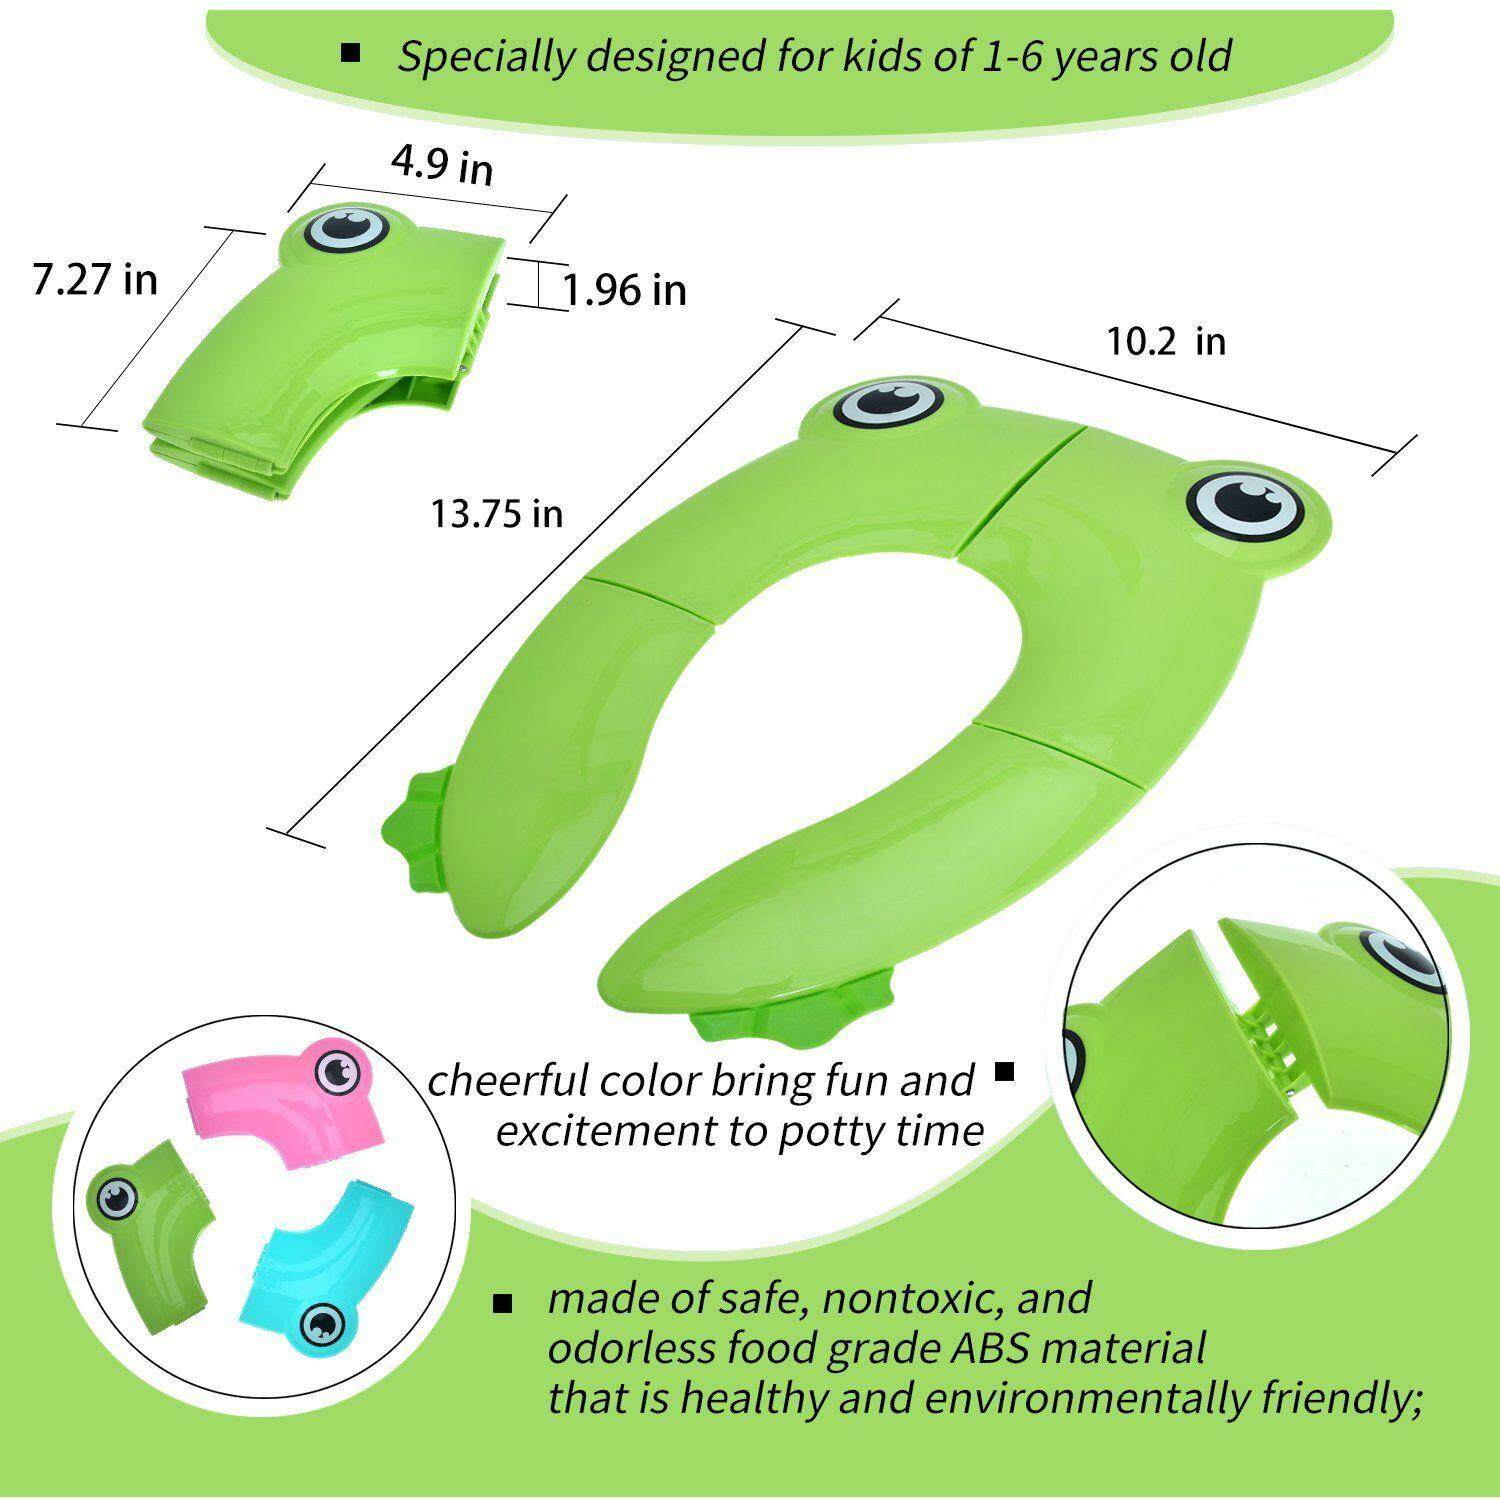 Portable Potty Foldable Travel Training Seat Pad Large Non Slip Silicone Pads Kids Boys Girls Toddlers Children Babies Reusable Upgraded Toilet Potty Seat Cover